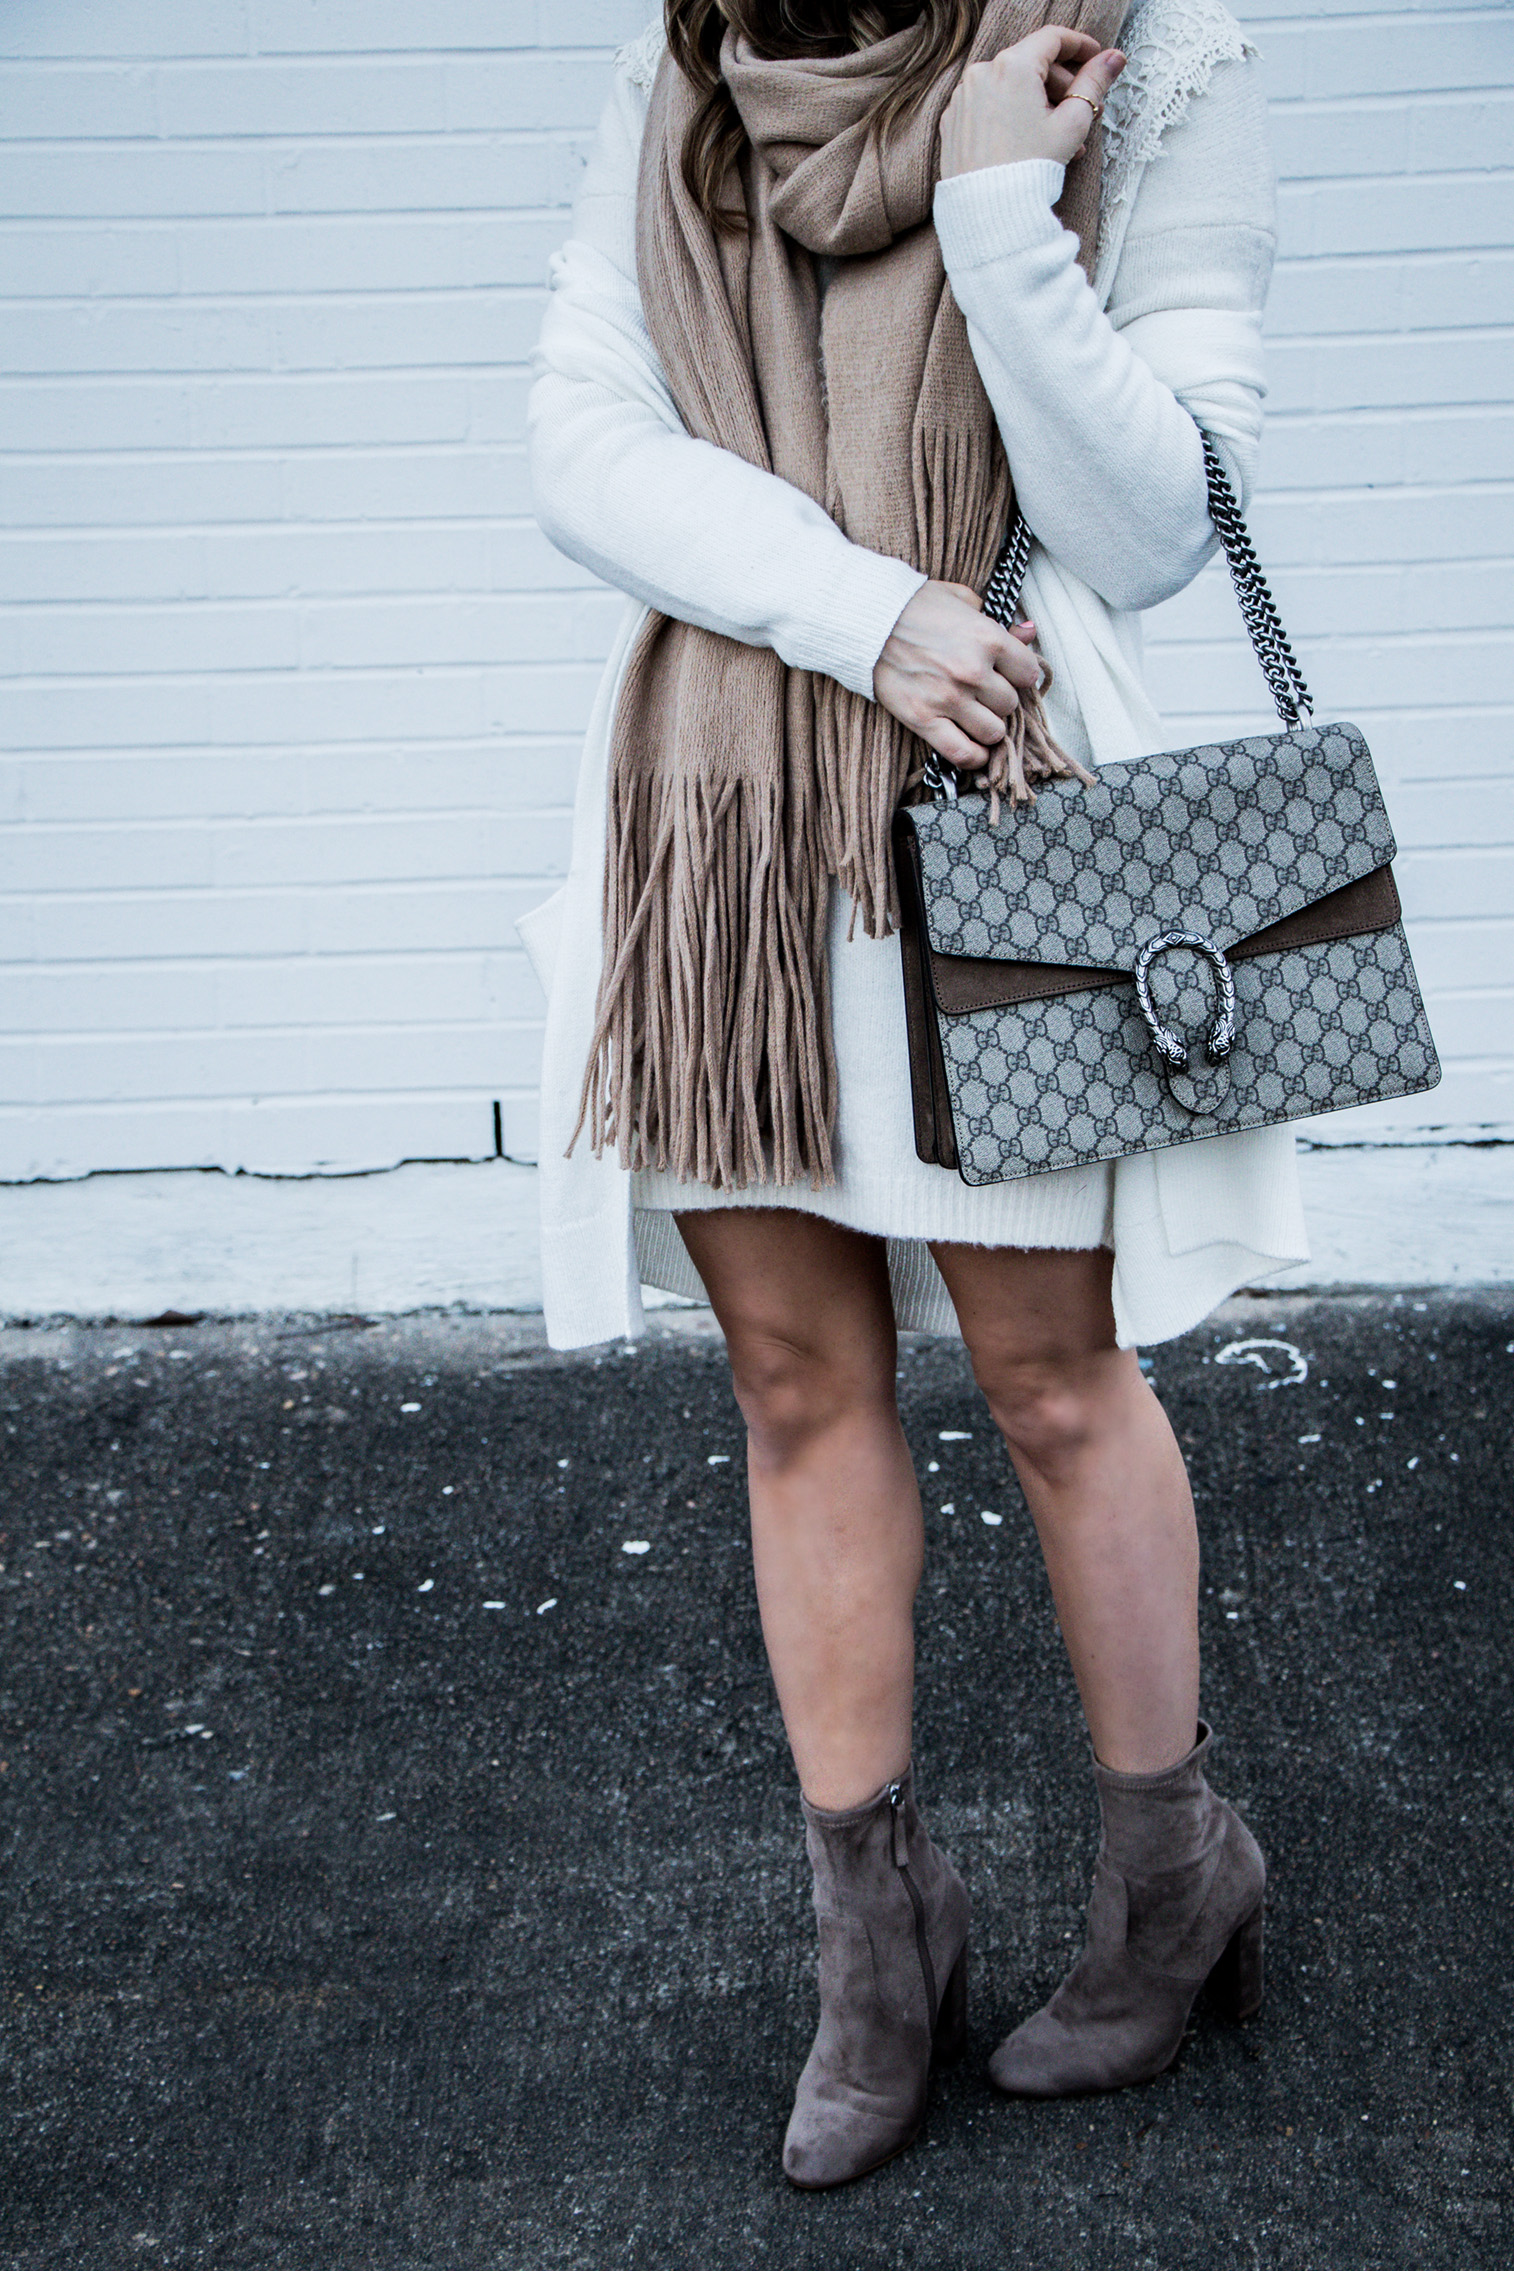 Houston fashion and lifestyle blogger wearing Steve Madden ankle boots and an ASOS sweater dress | Cozy layers